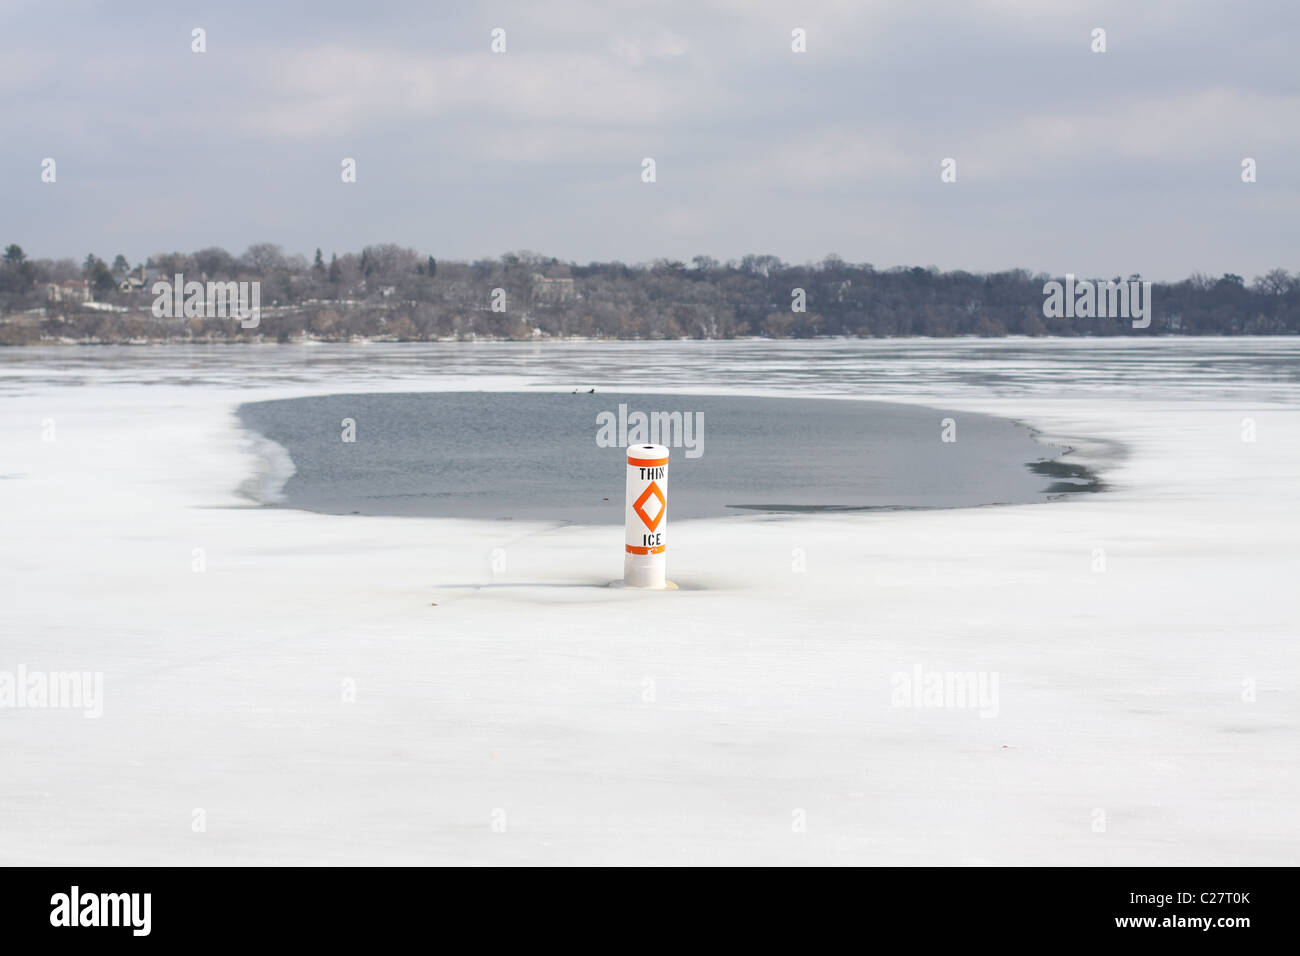 A lake thawing in early spring, with a 'thin ice' sign. - Stock Image